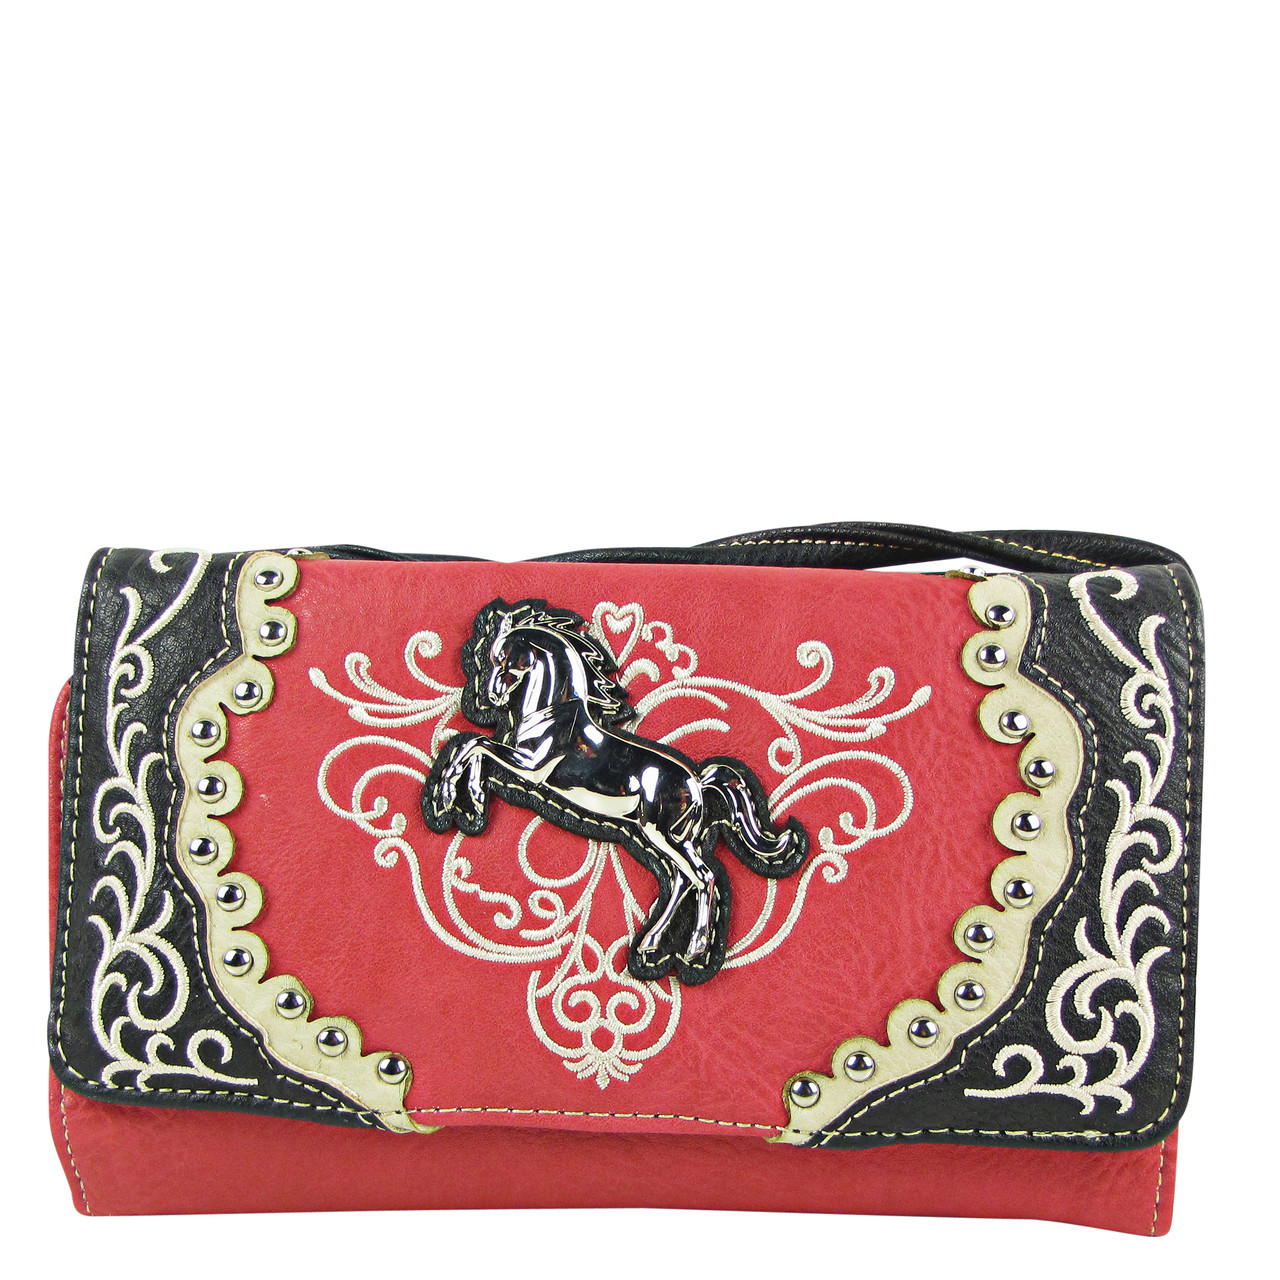 HOT PINK WESTERN STITCH METAL HORSE LOOK CLUTCH TRIFOLD WALLET CW1-1289HPK